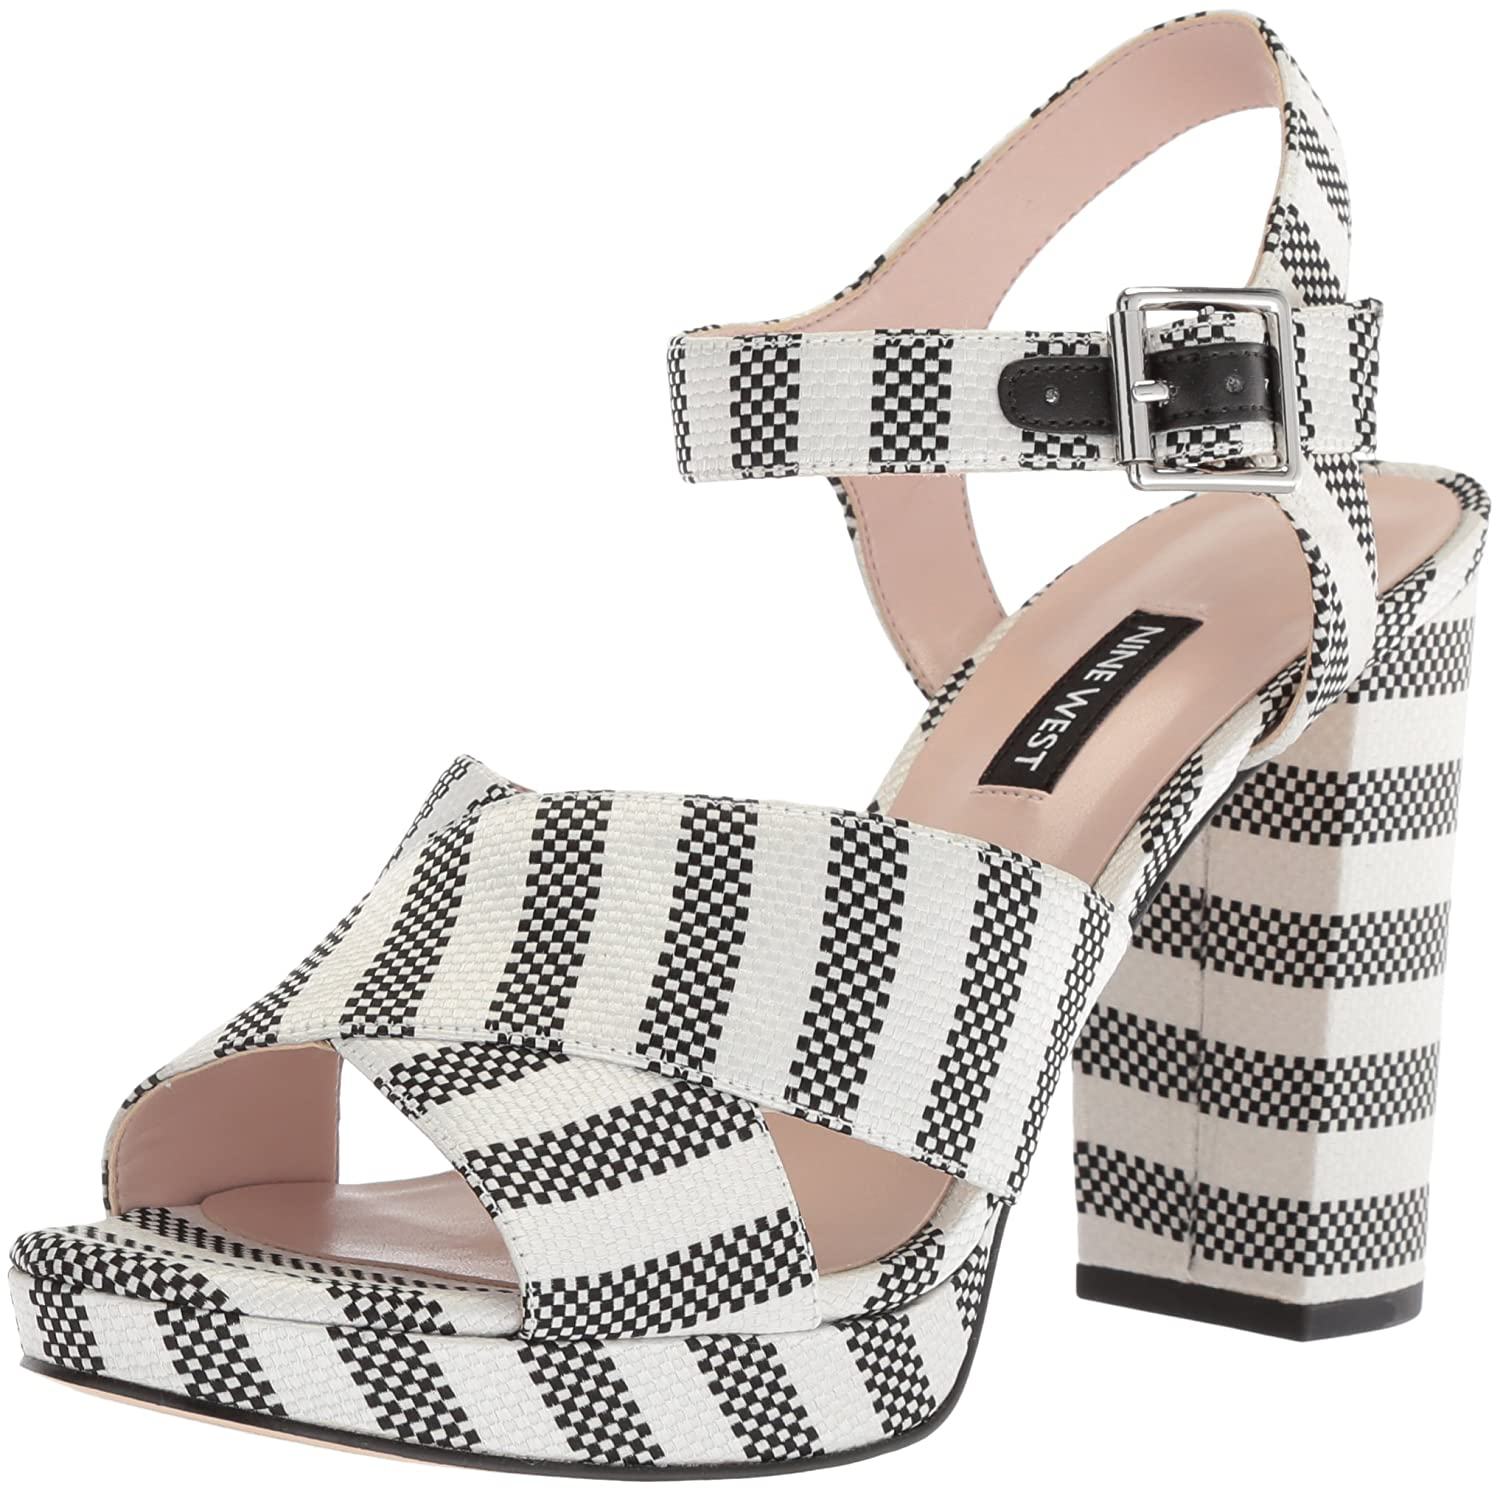 dbfcccbdb83 Nine West Women s JIMAR Fabric Heeled Sandal  Buy Online at Low Prices in  India - Amazon.in